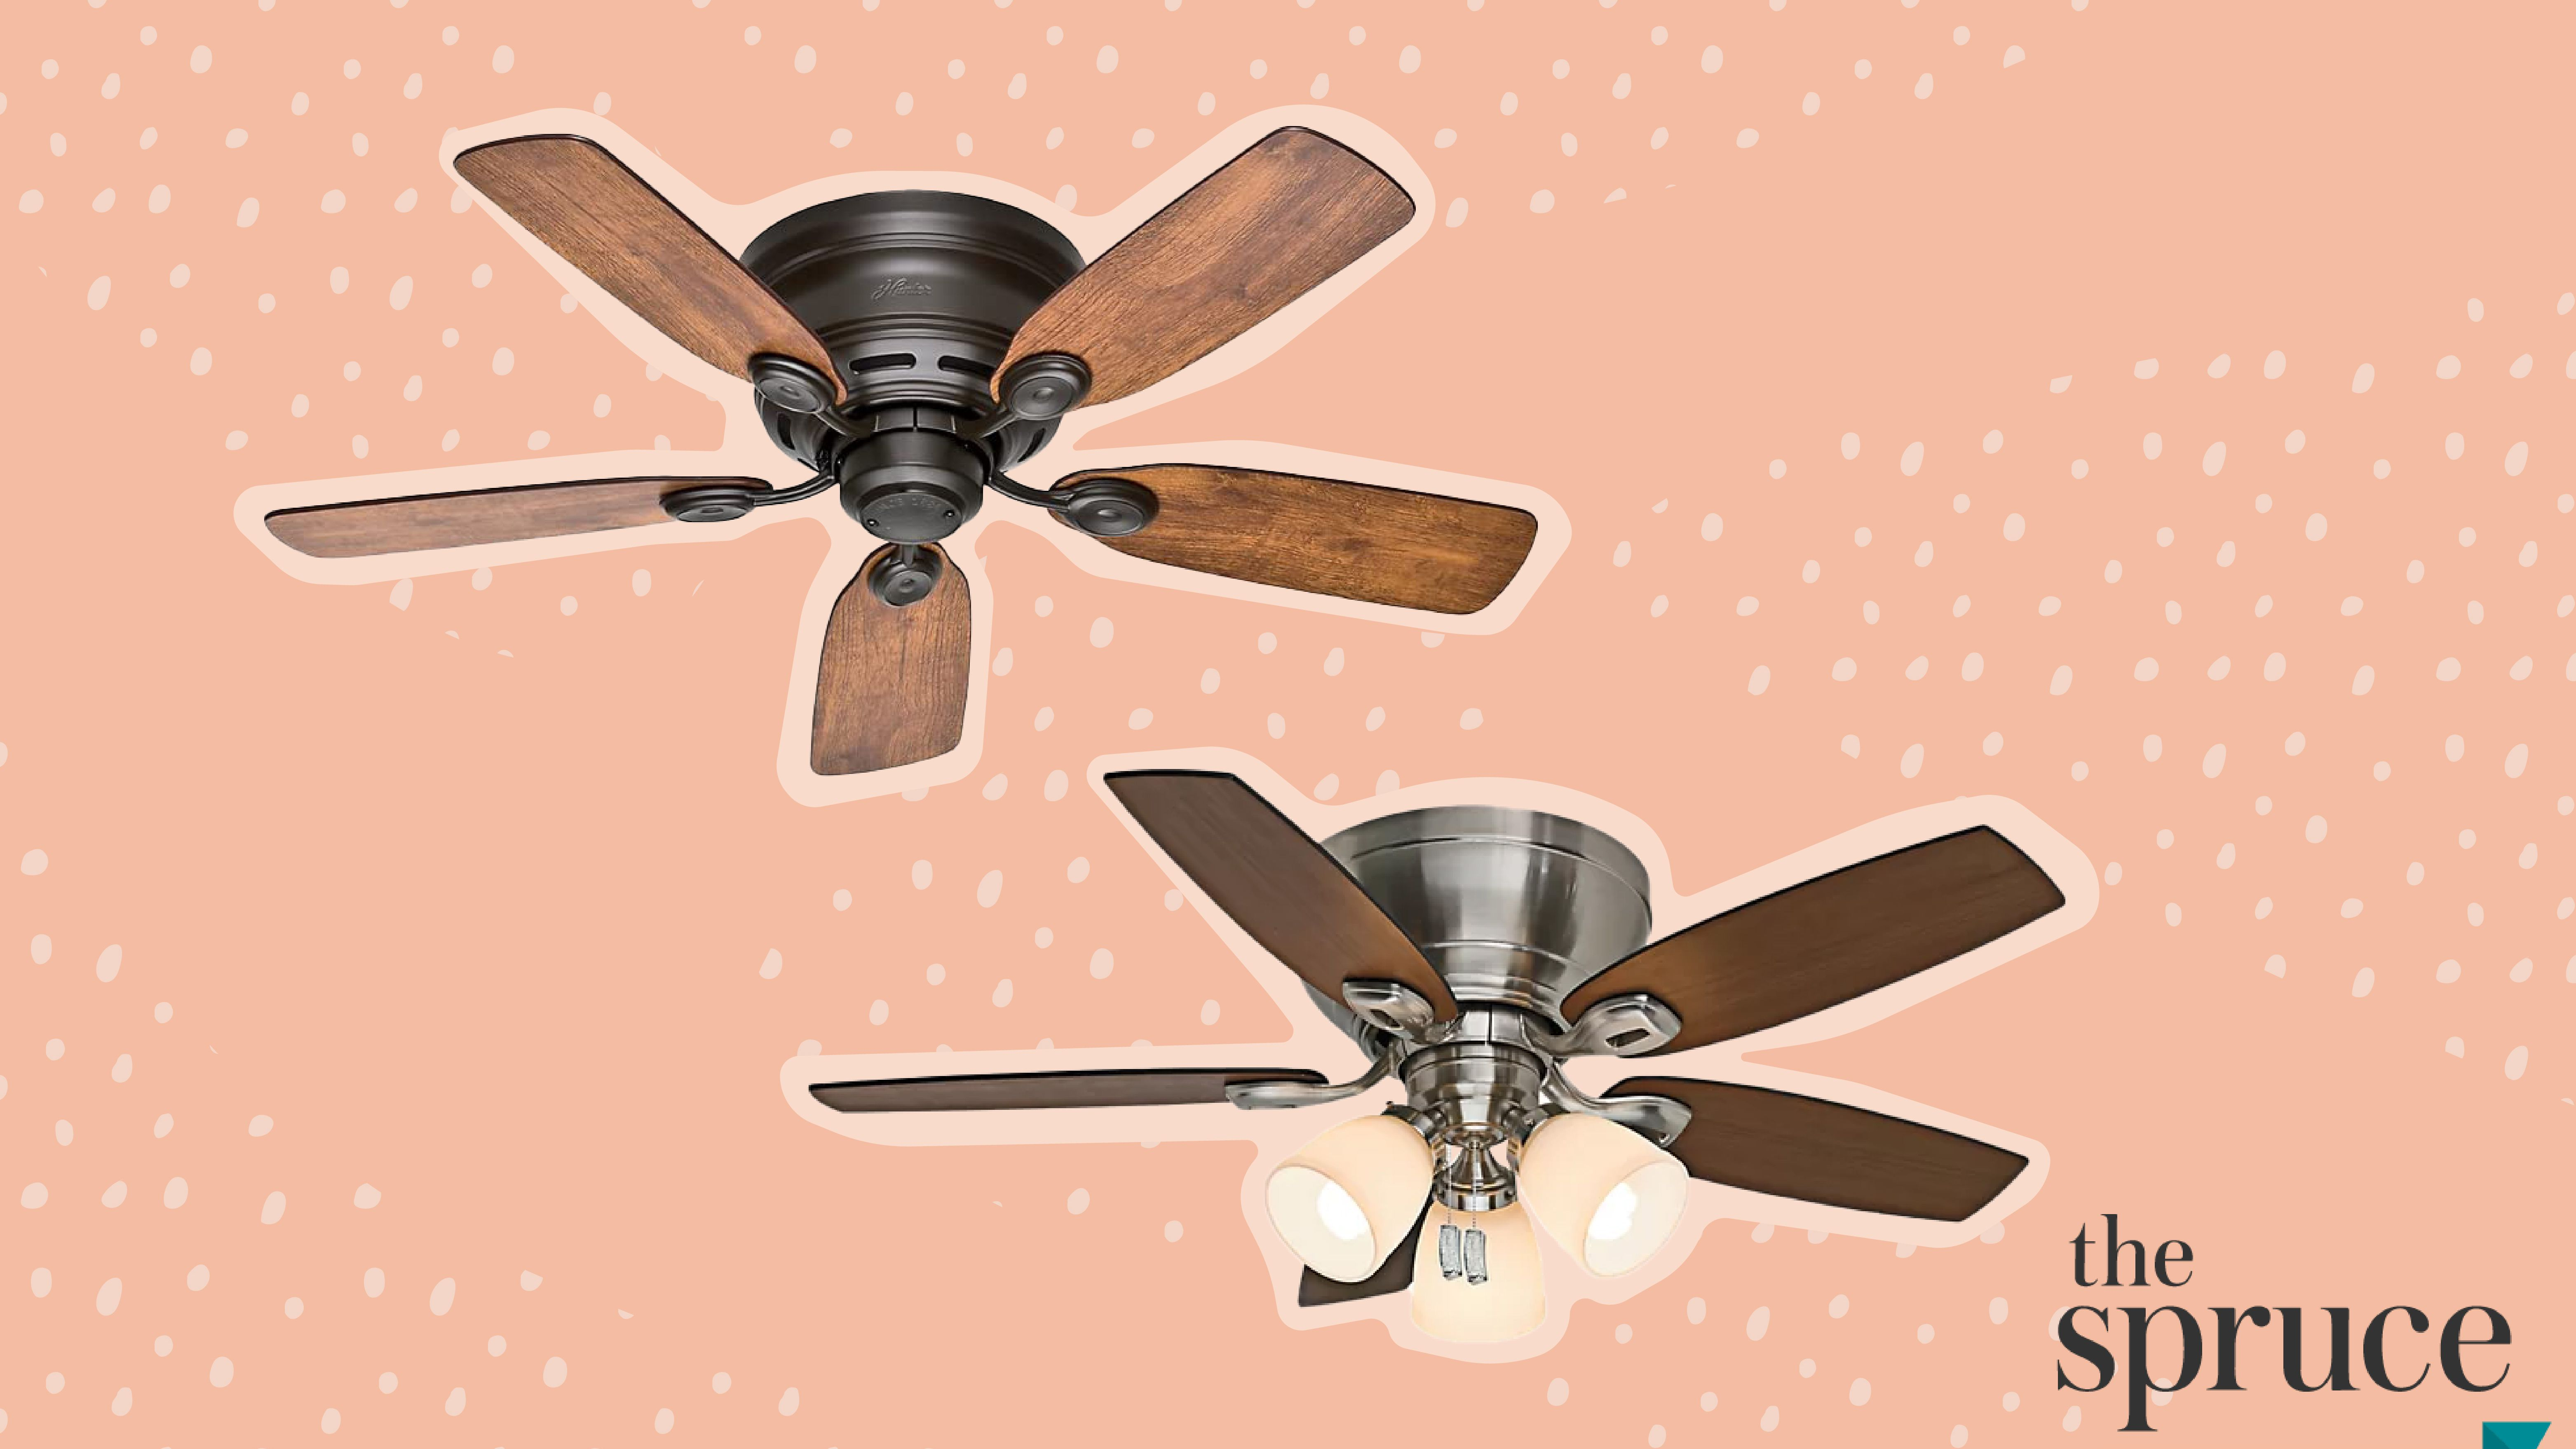 10 Ultra Modern Ceiling Fans Of 2021 That Matches Your Home Decor